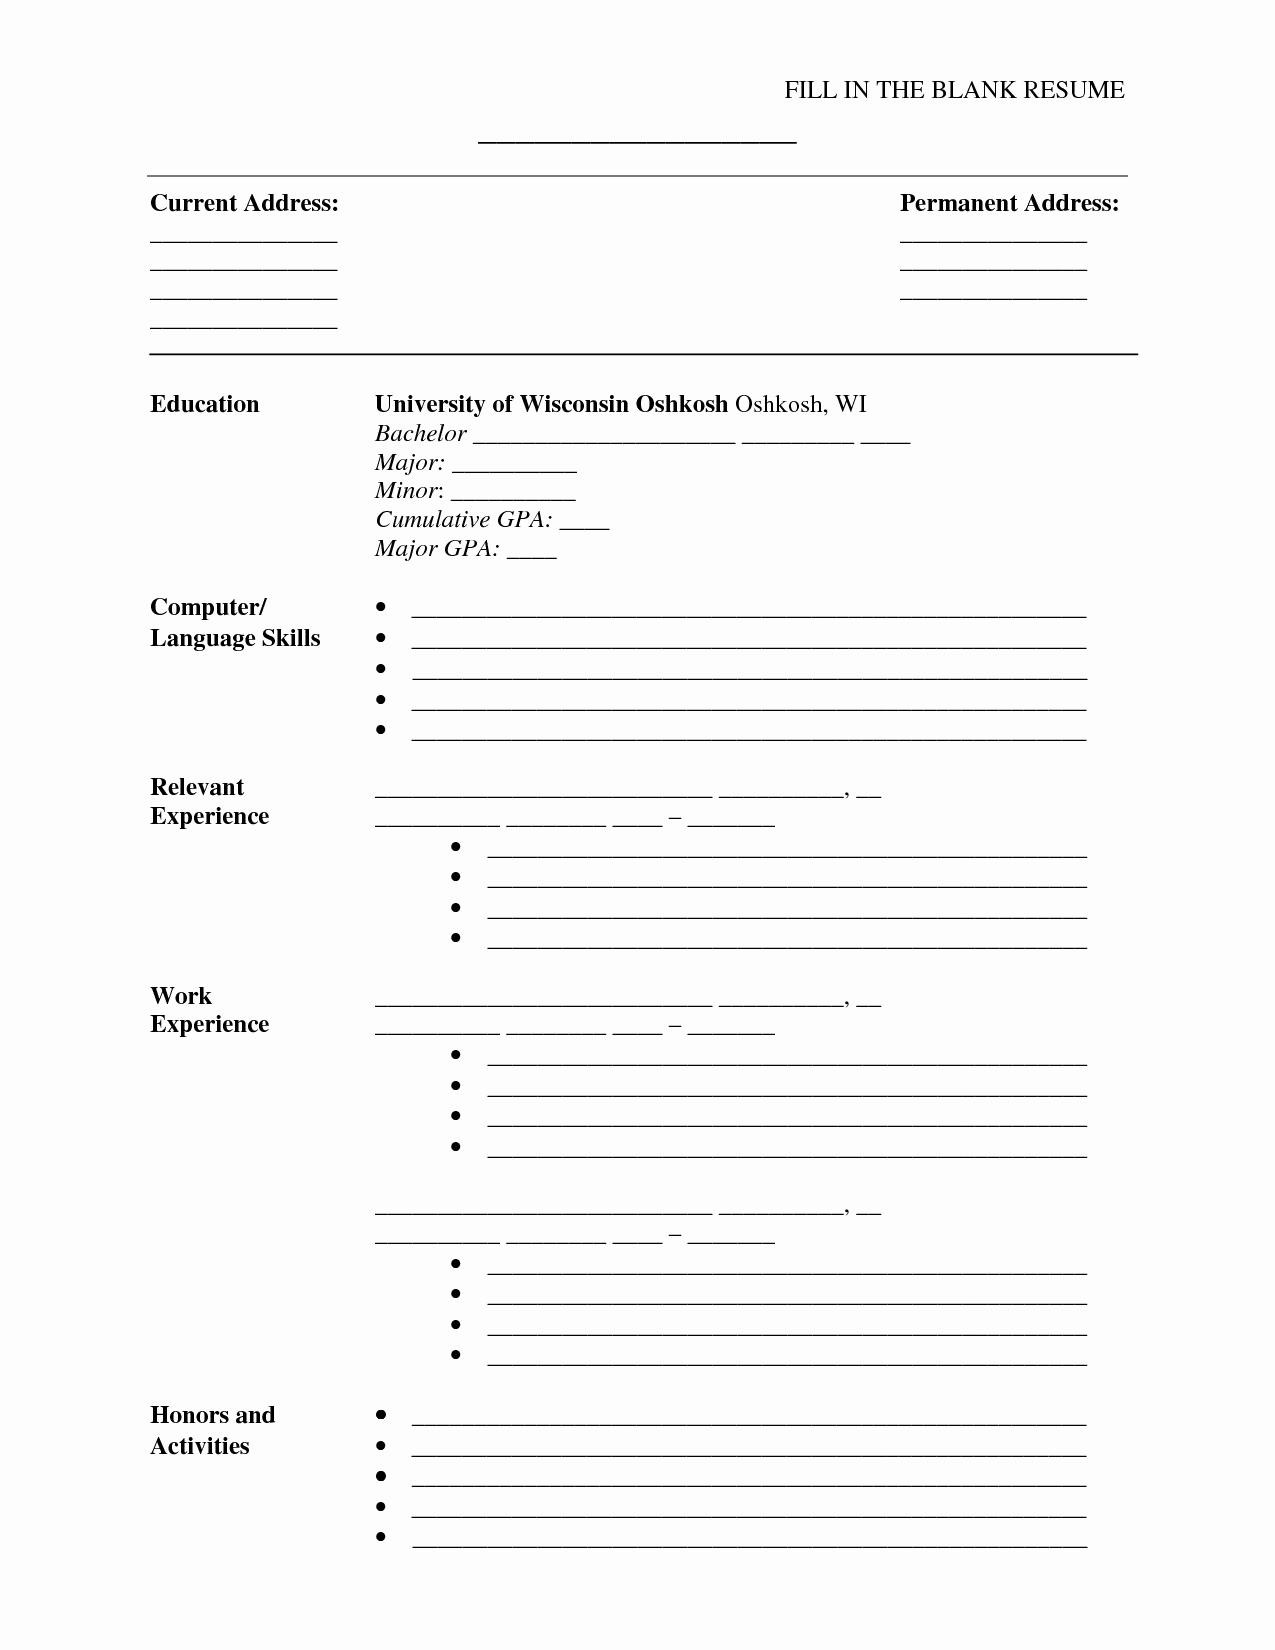 Empty Resume Templates